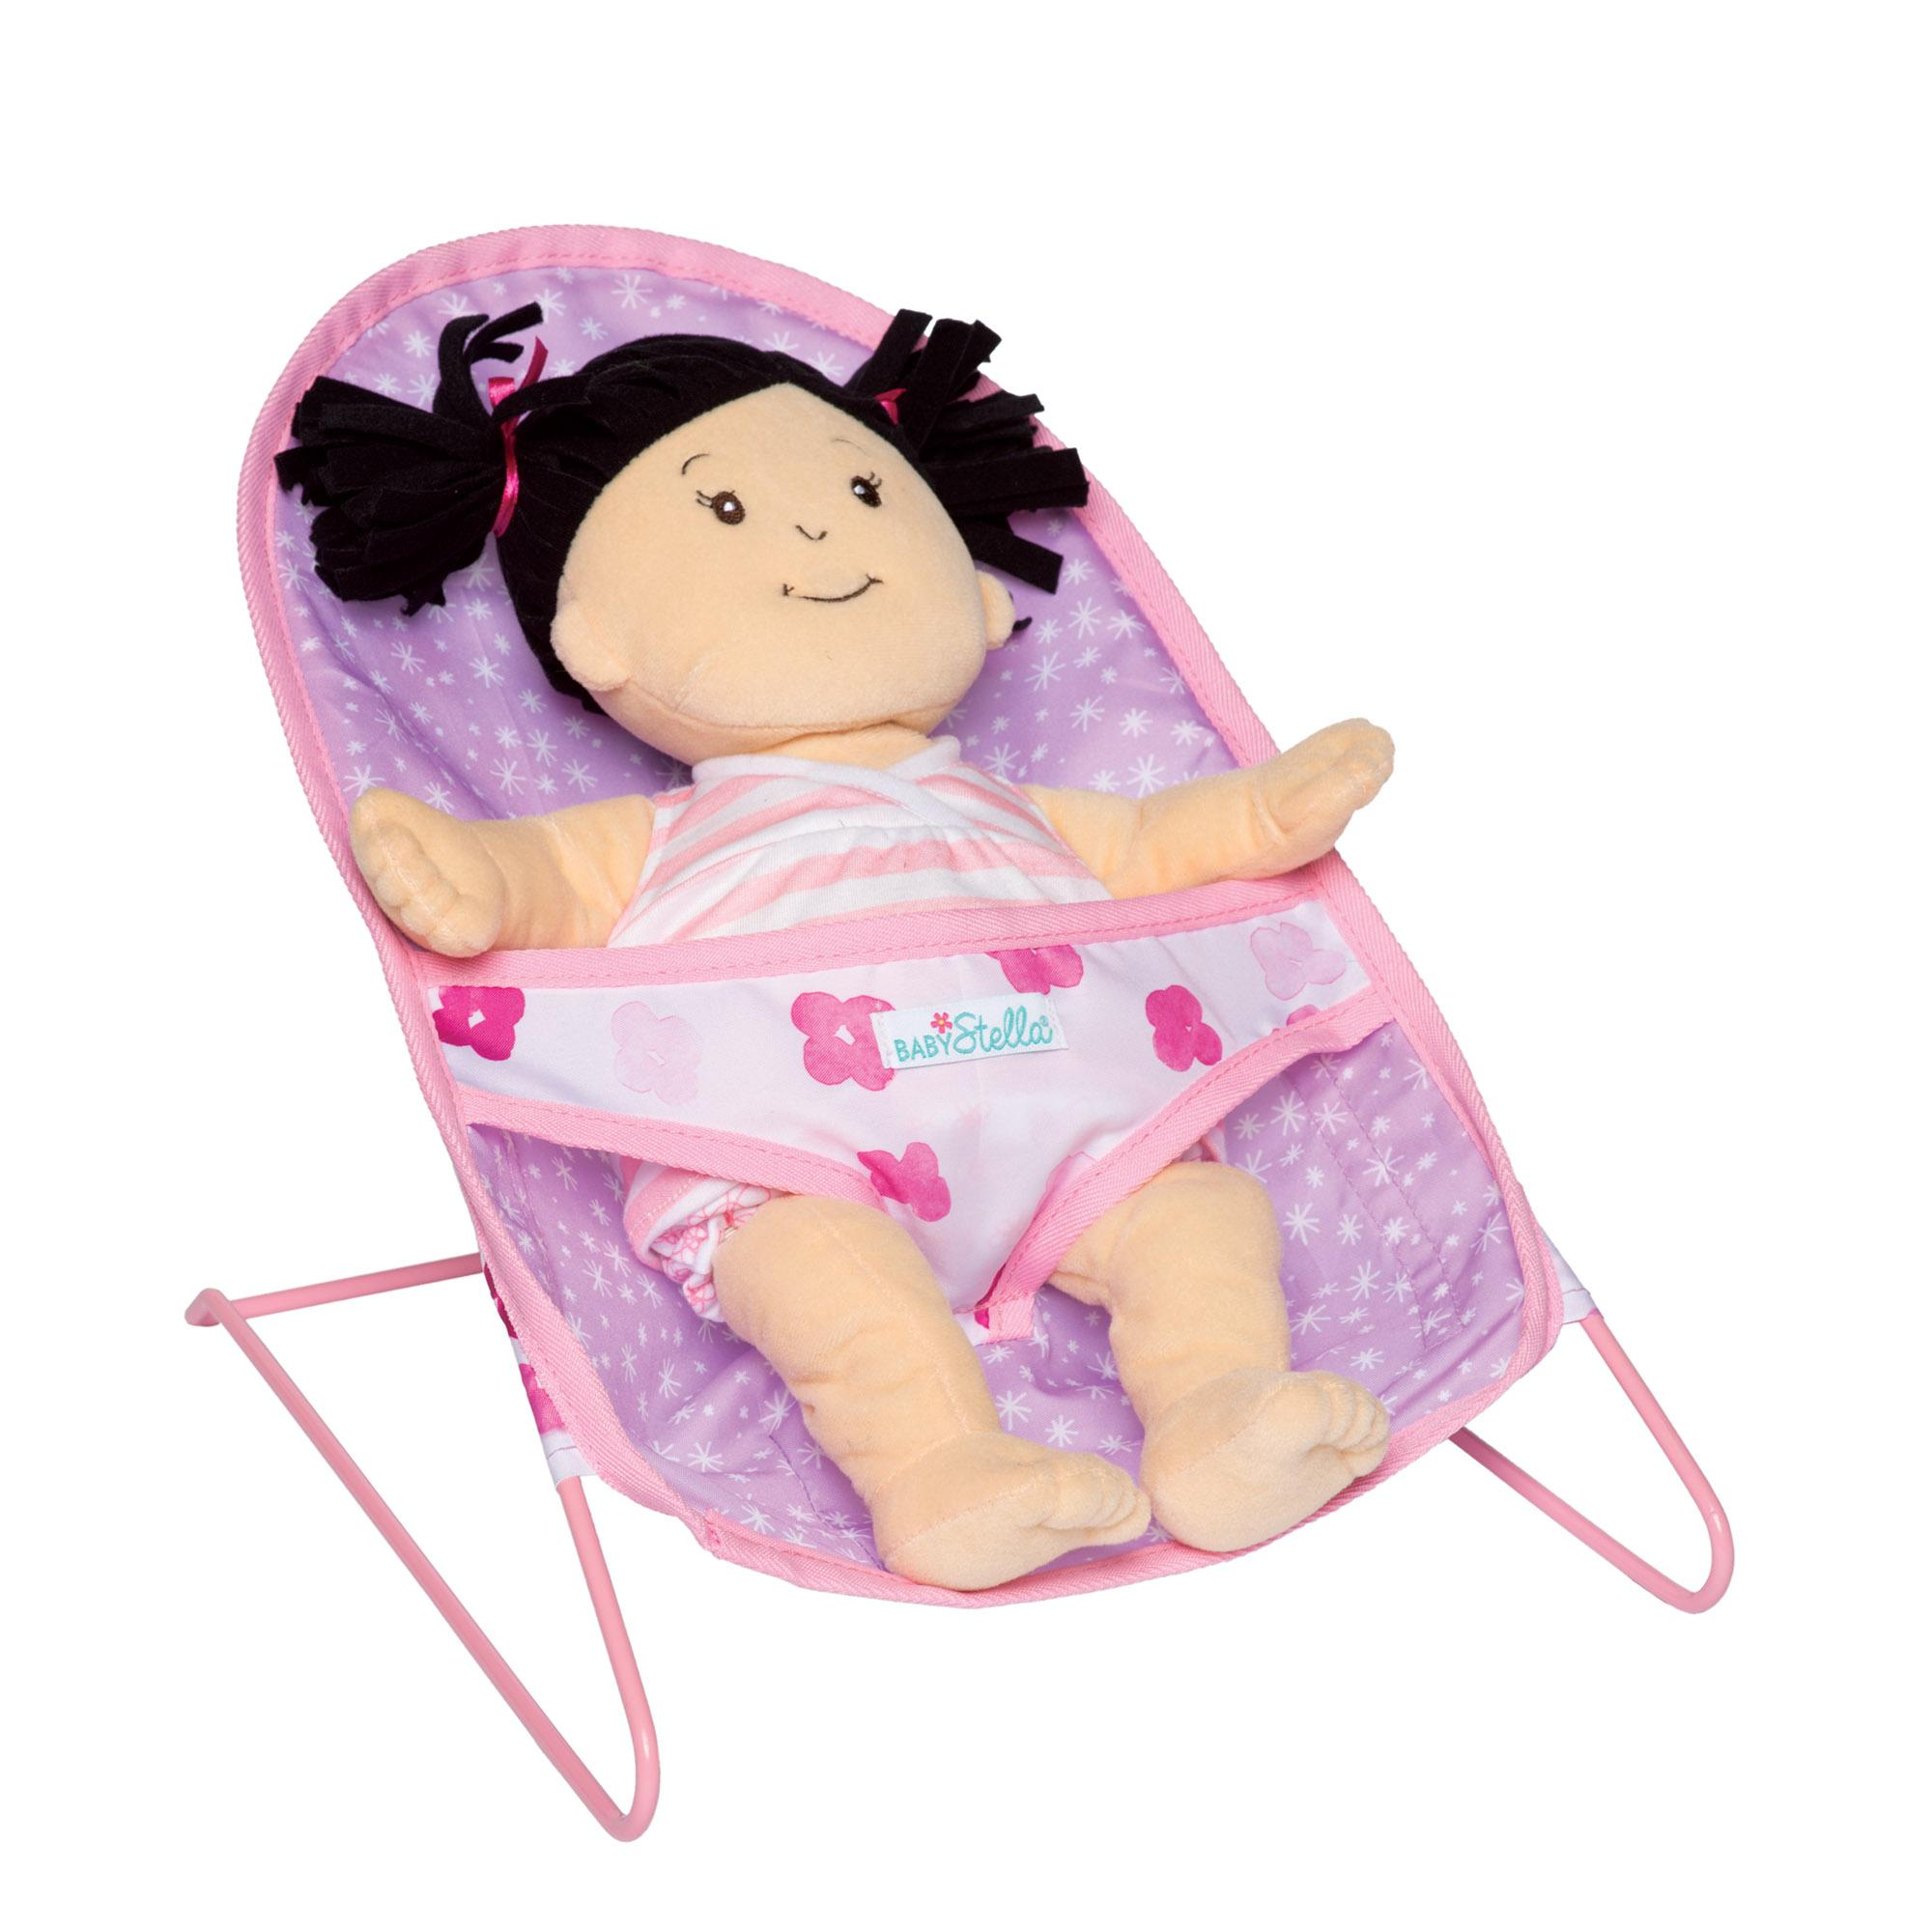 Manhattan Toy Baby Stella Bouncy Chair Nurturing Doll